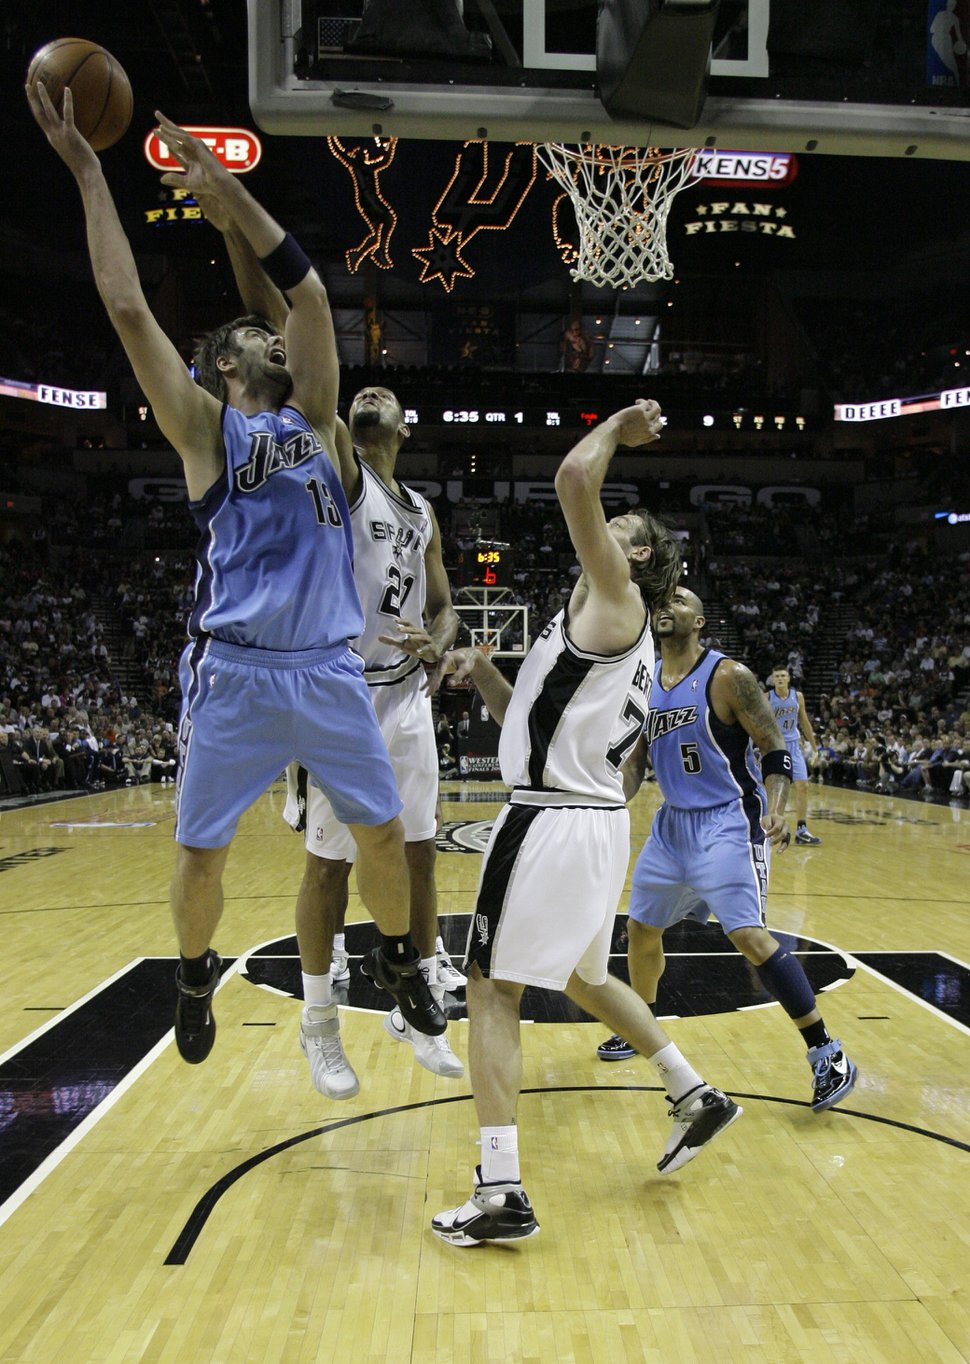 Utah Jazz center Mehmet Okur goes up for a shot in the second quarter of their Western Conference playoff basketball game, Sunday, May 20, 2007, in San Antonio. (AP Photo/Matt Slocum)